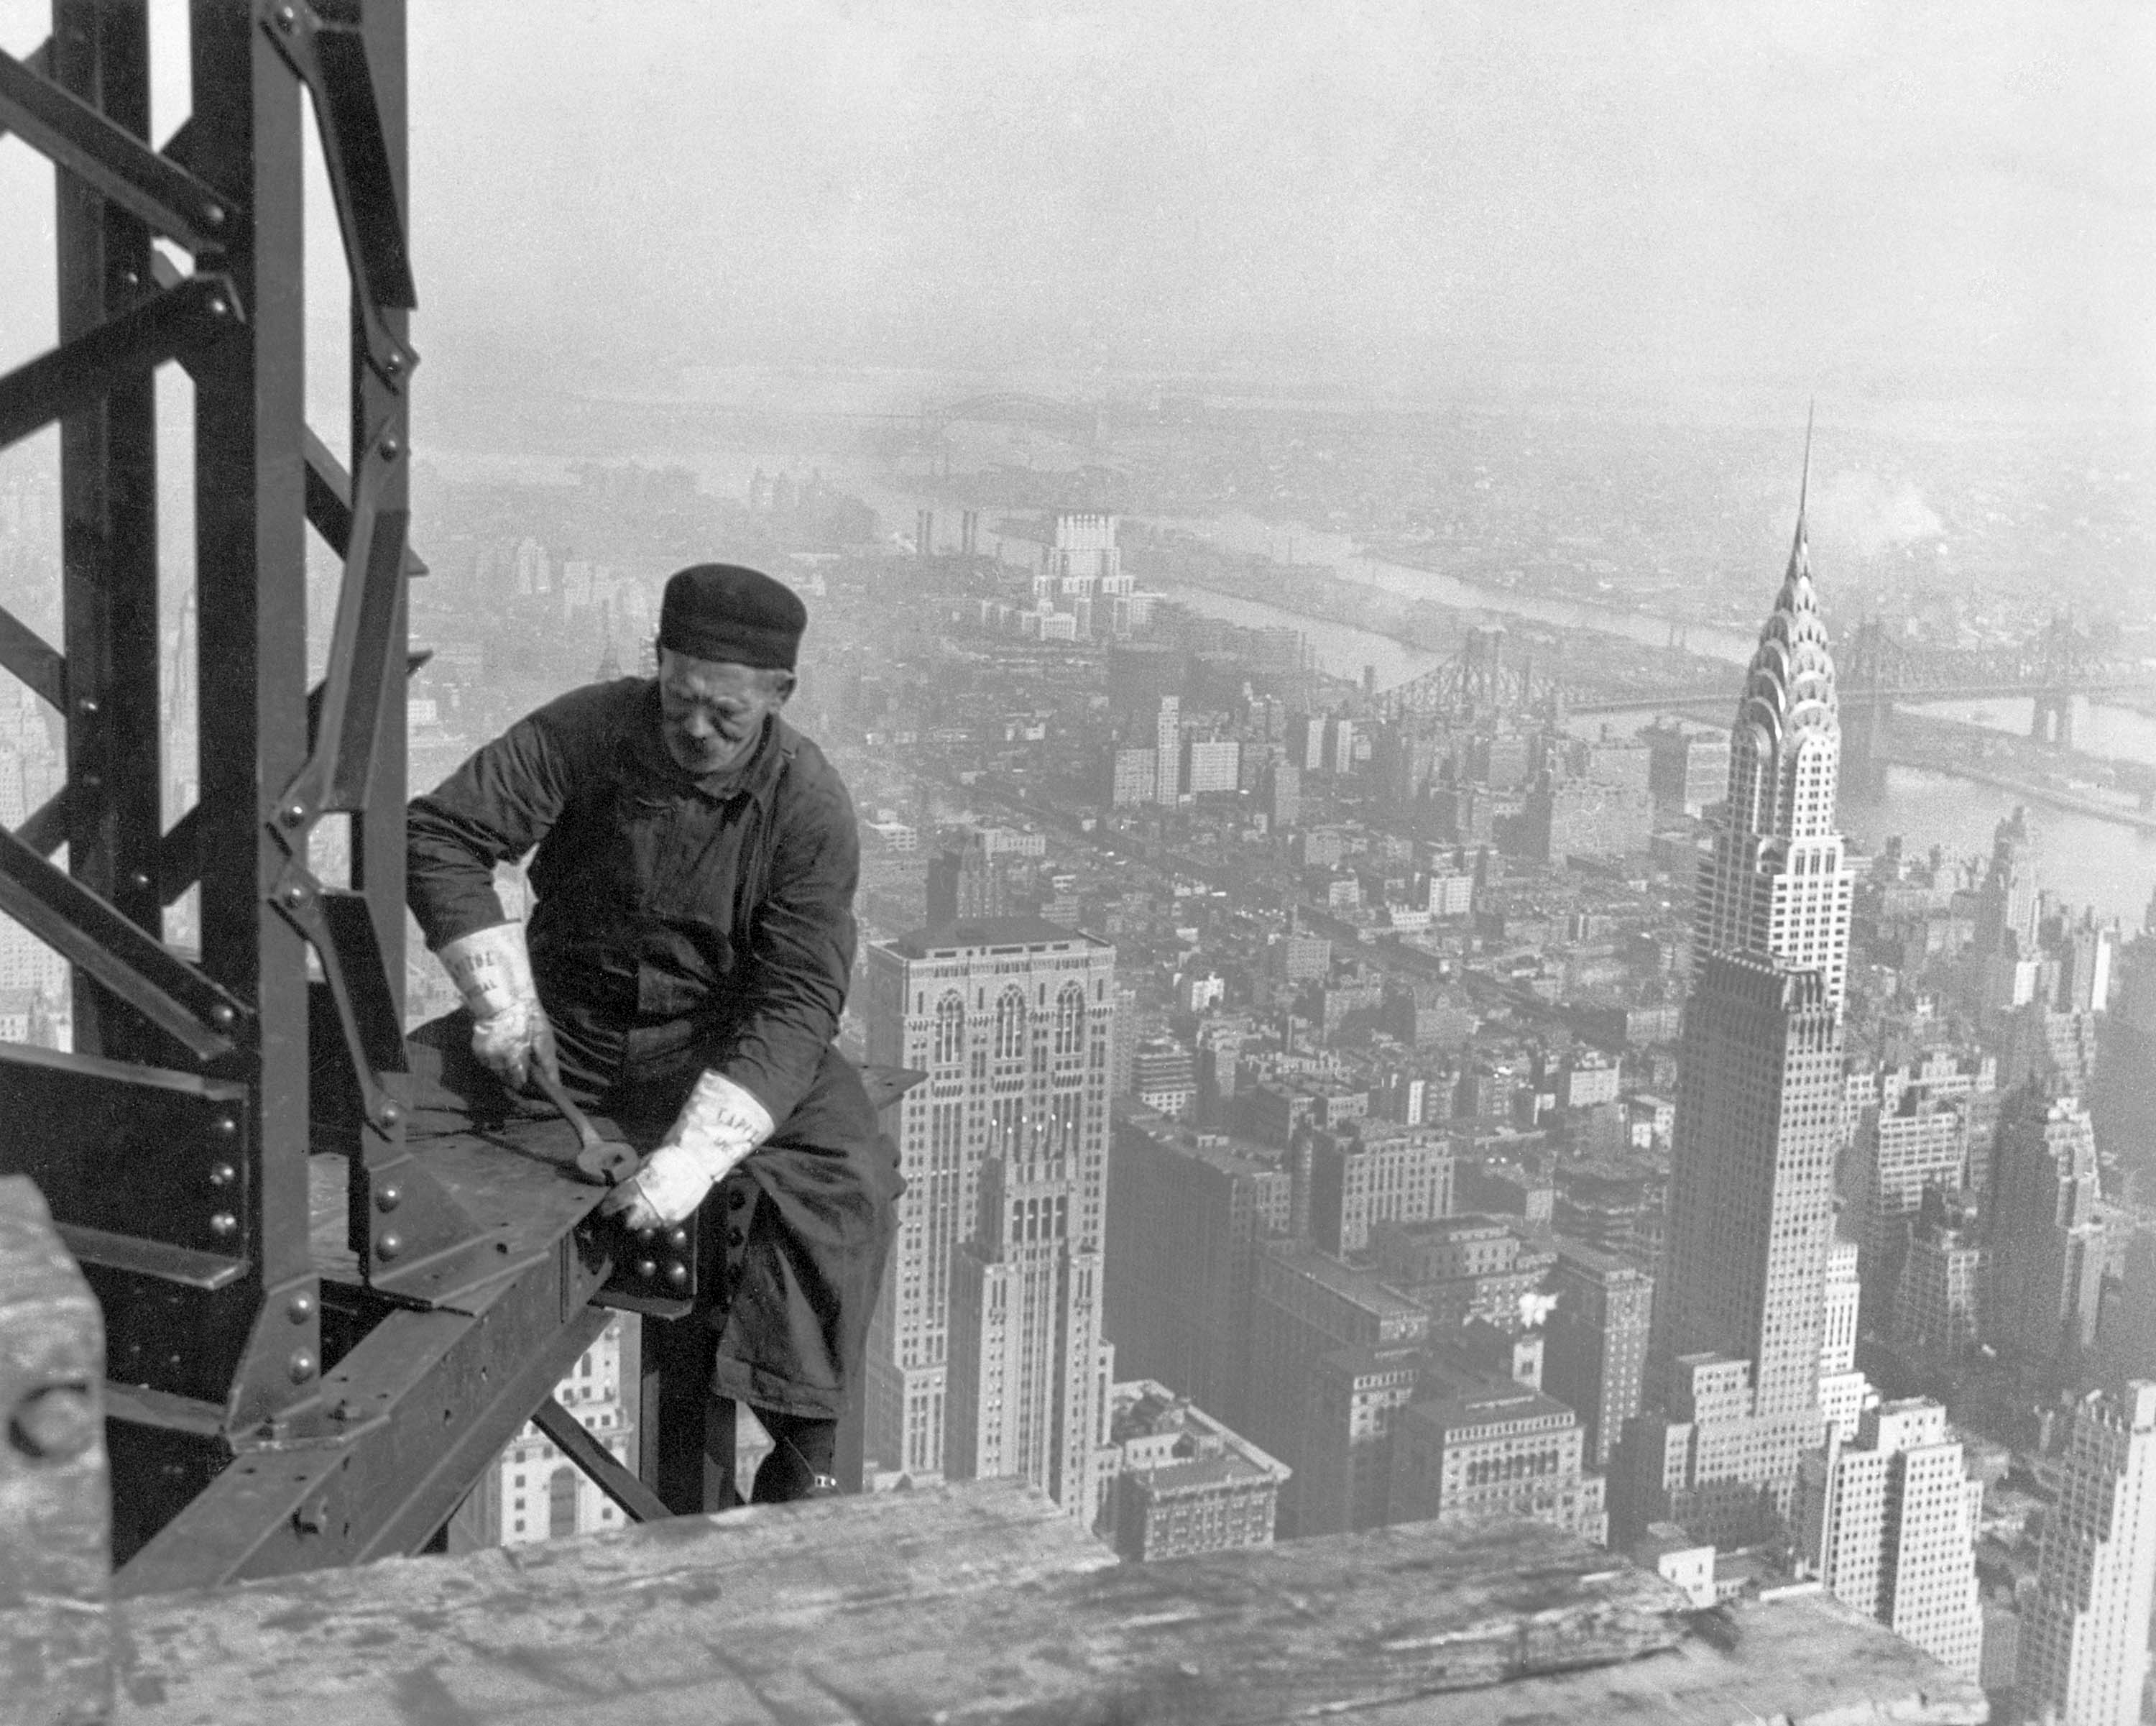 new york city descriptive essay how much do you need to live in  history of new york a frameworker tightens bolts on the empire state building in 1930 the